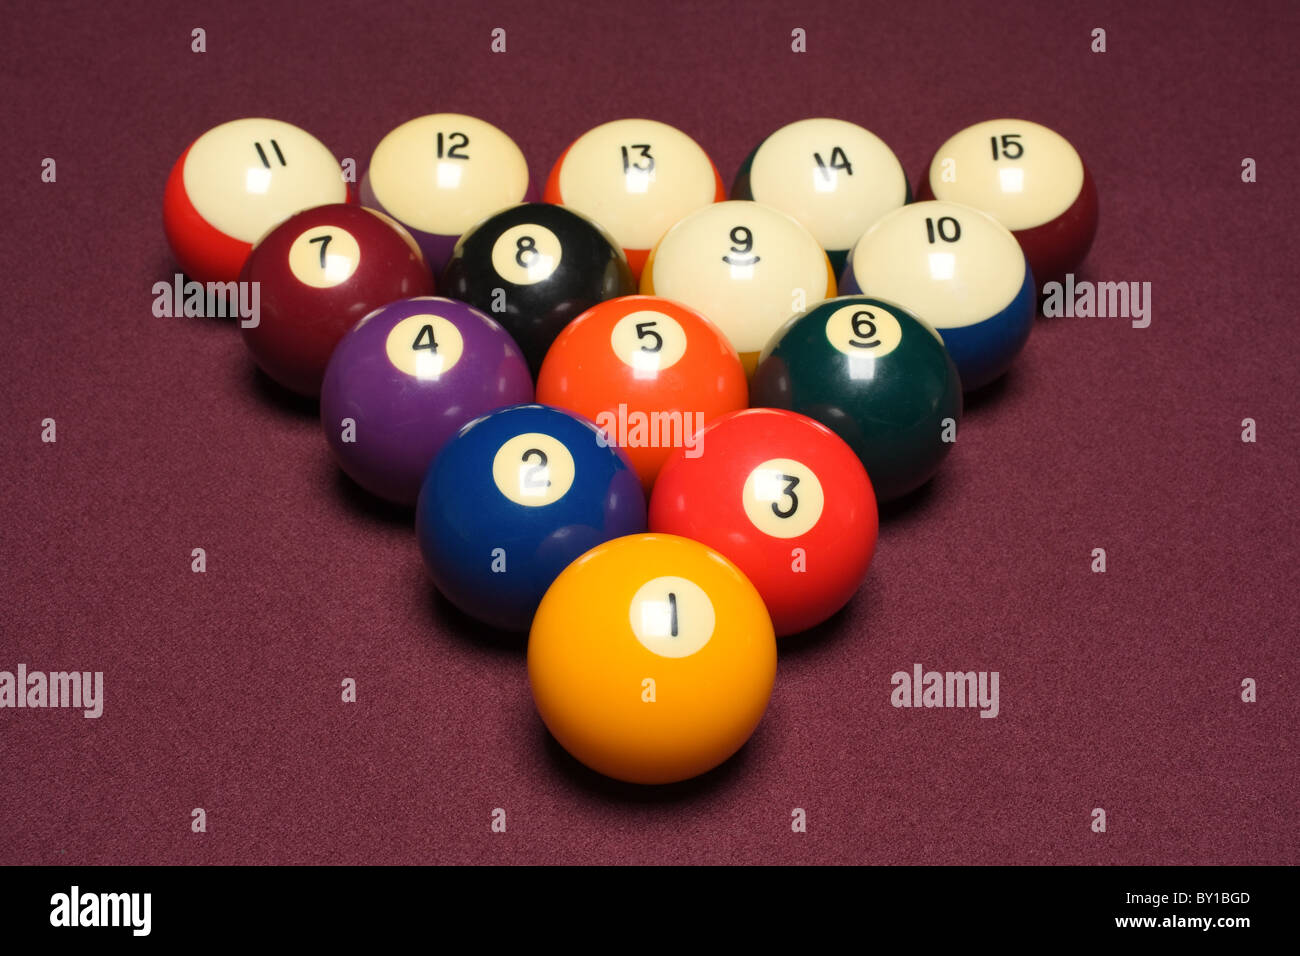 photo complimentary pool palette a colour table stock swatches green with in balls billiard